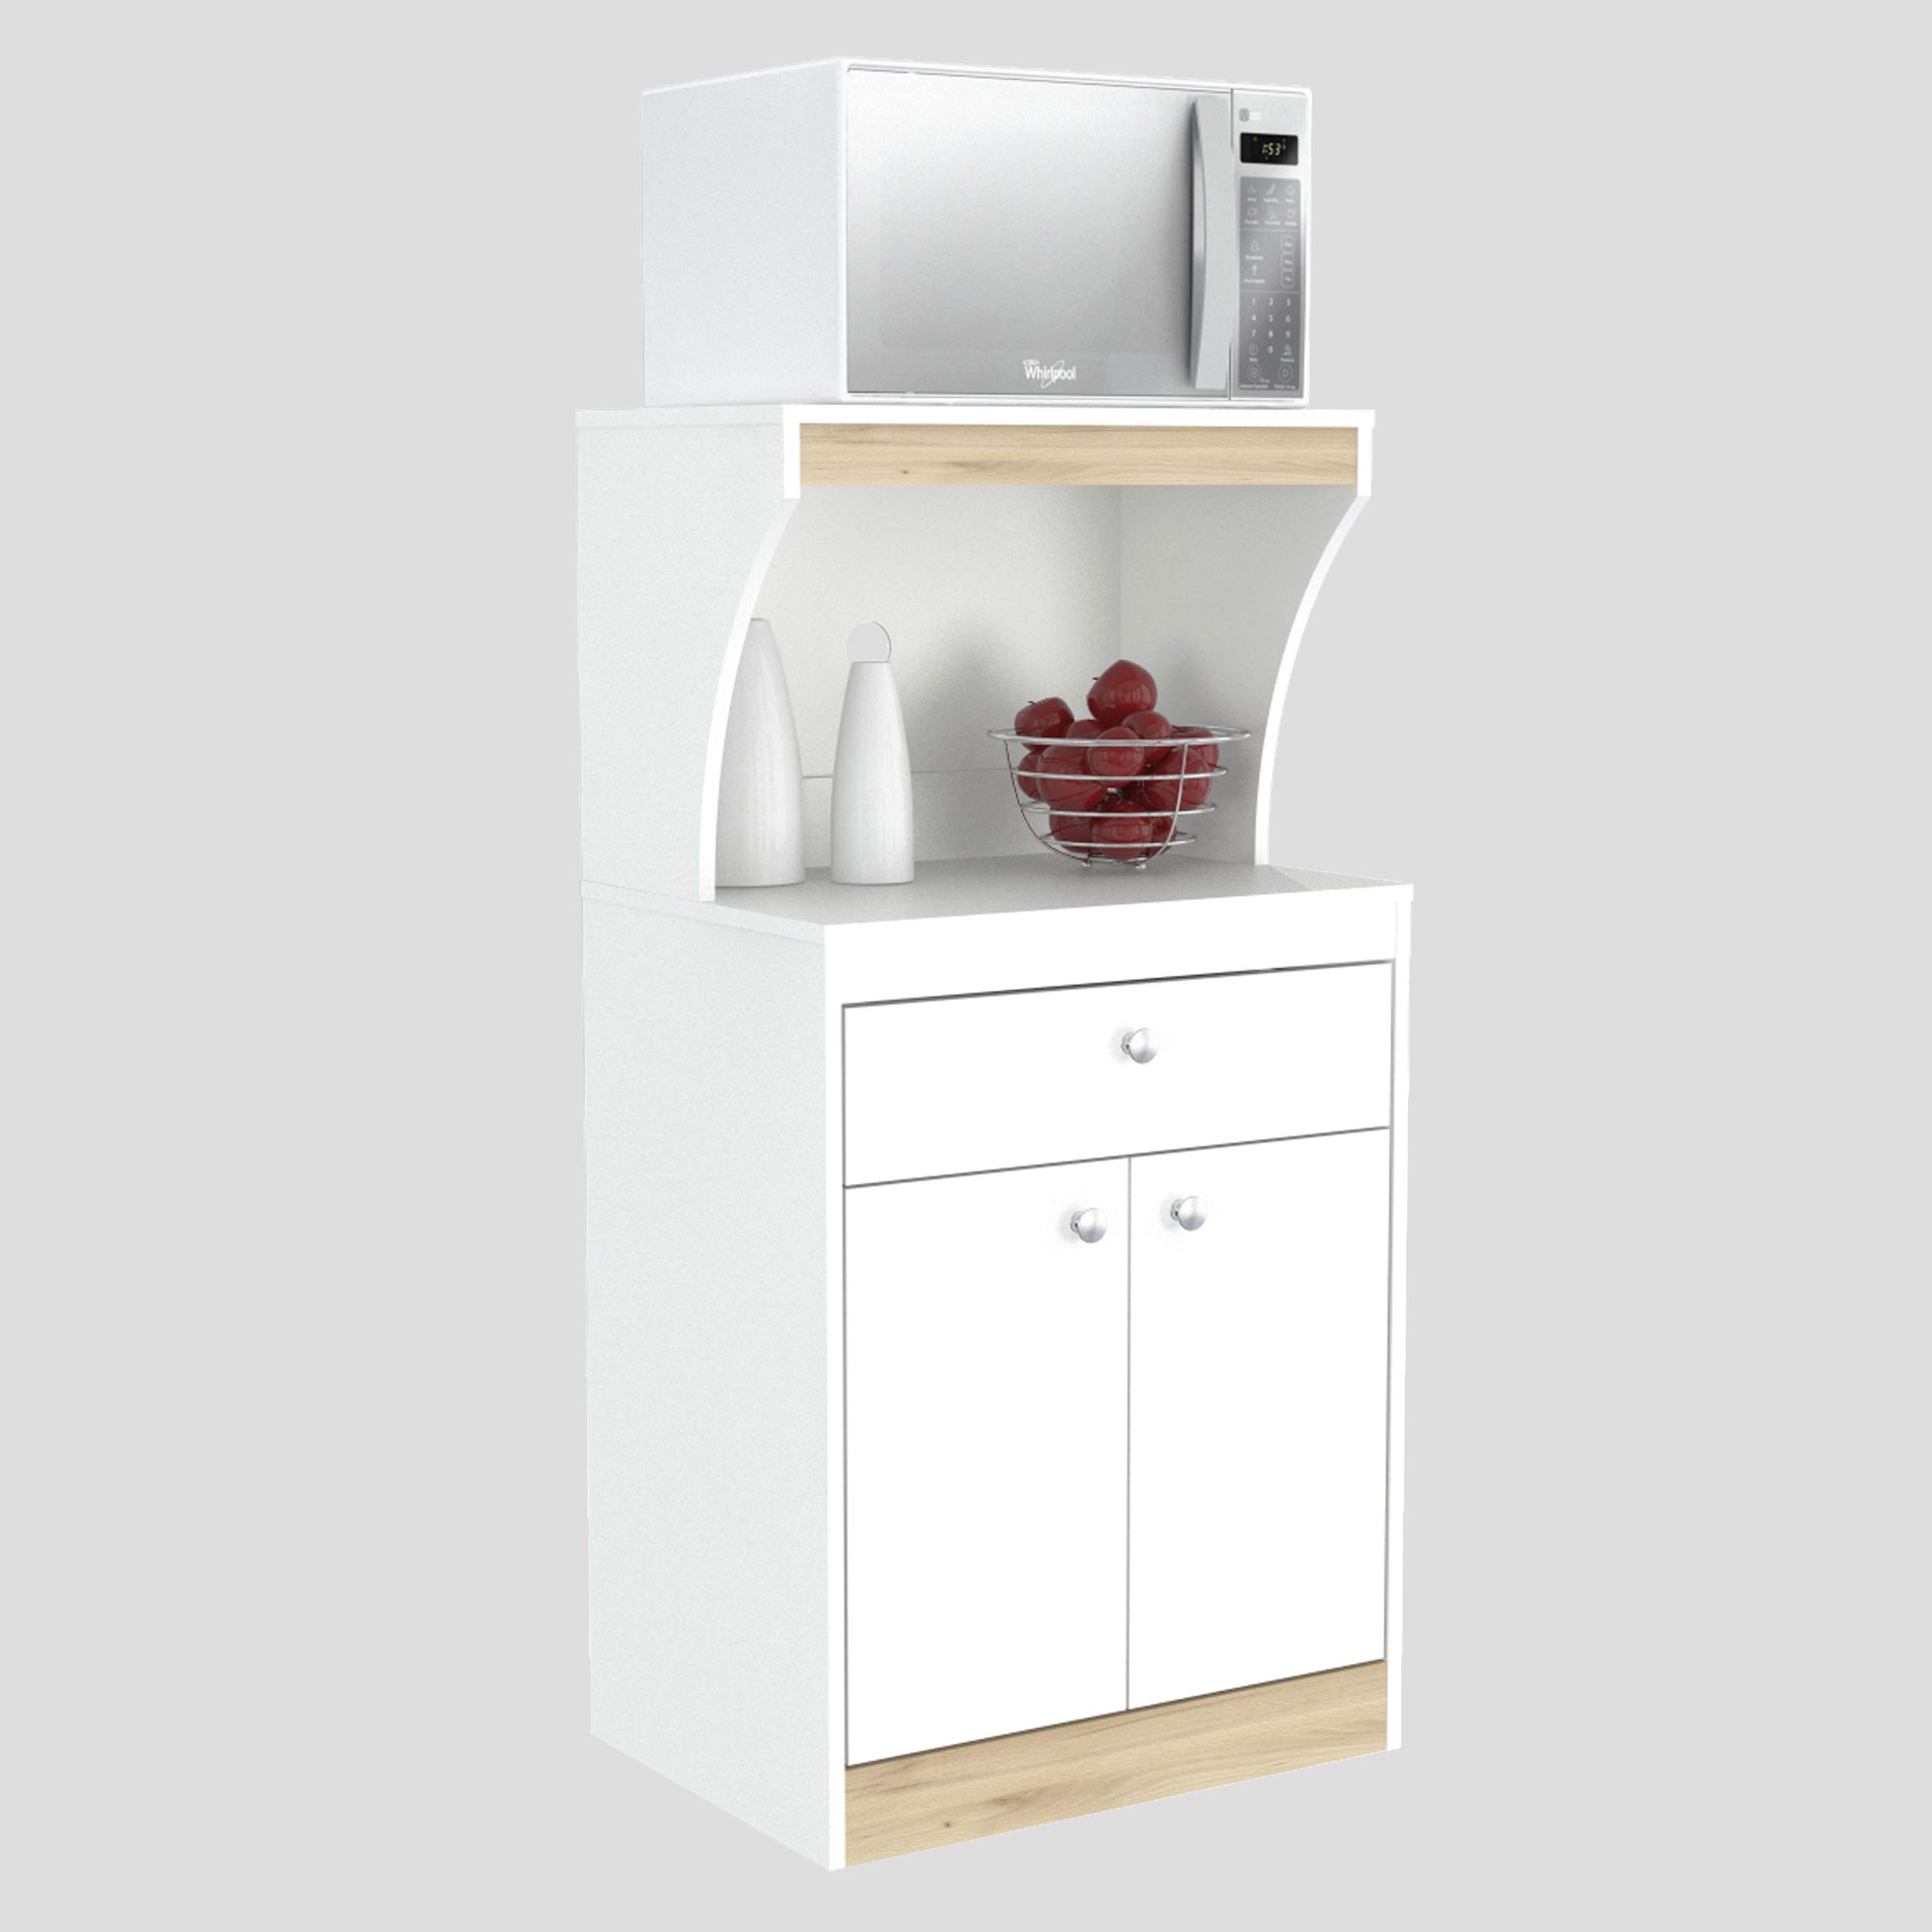 Inval Galley Kitchen/Microwave 1-Drawer/2-Door Storage Cabinet, White and Vienes Oak by Inval